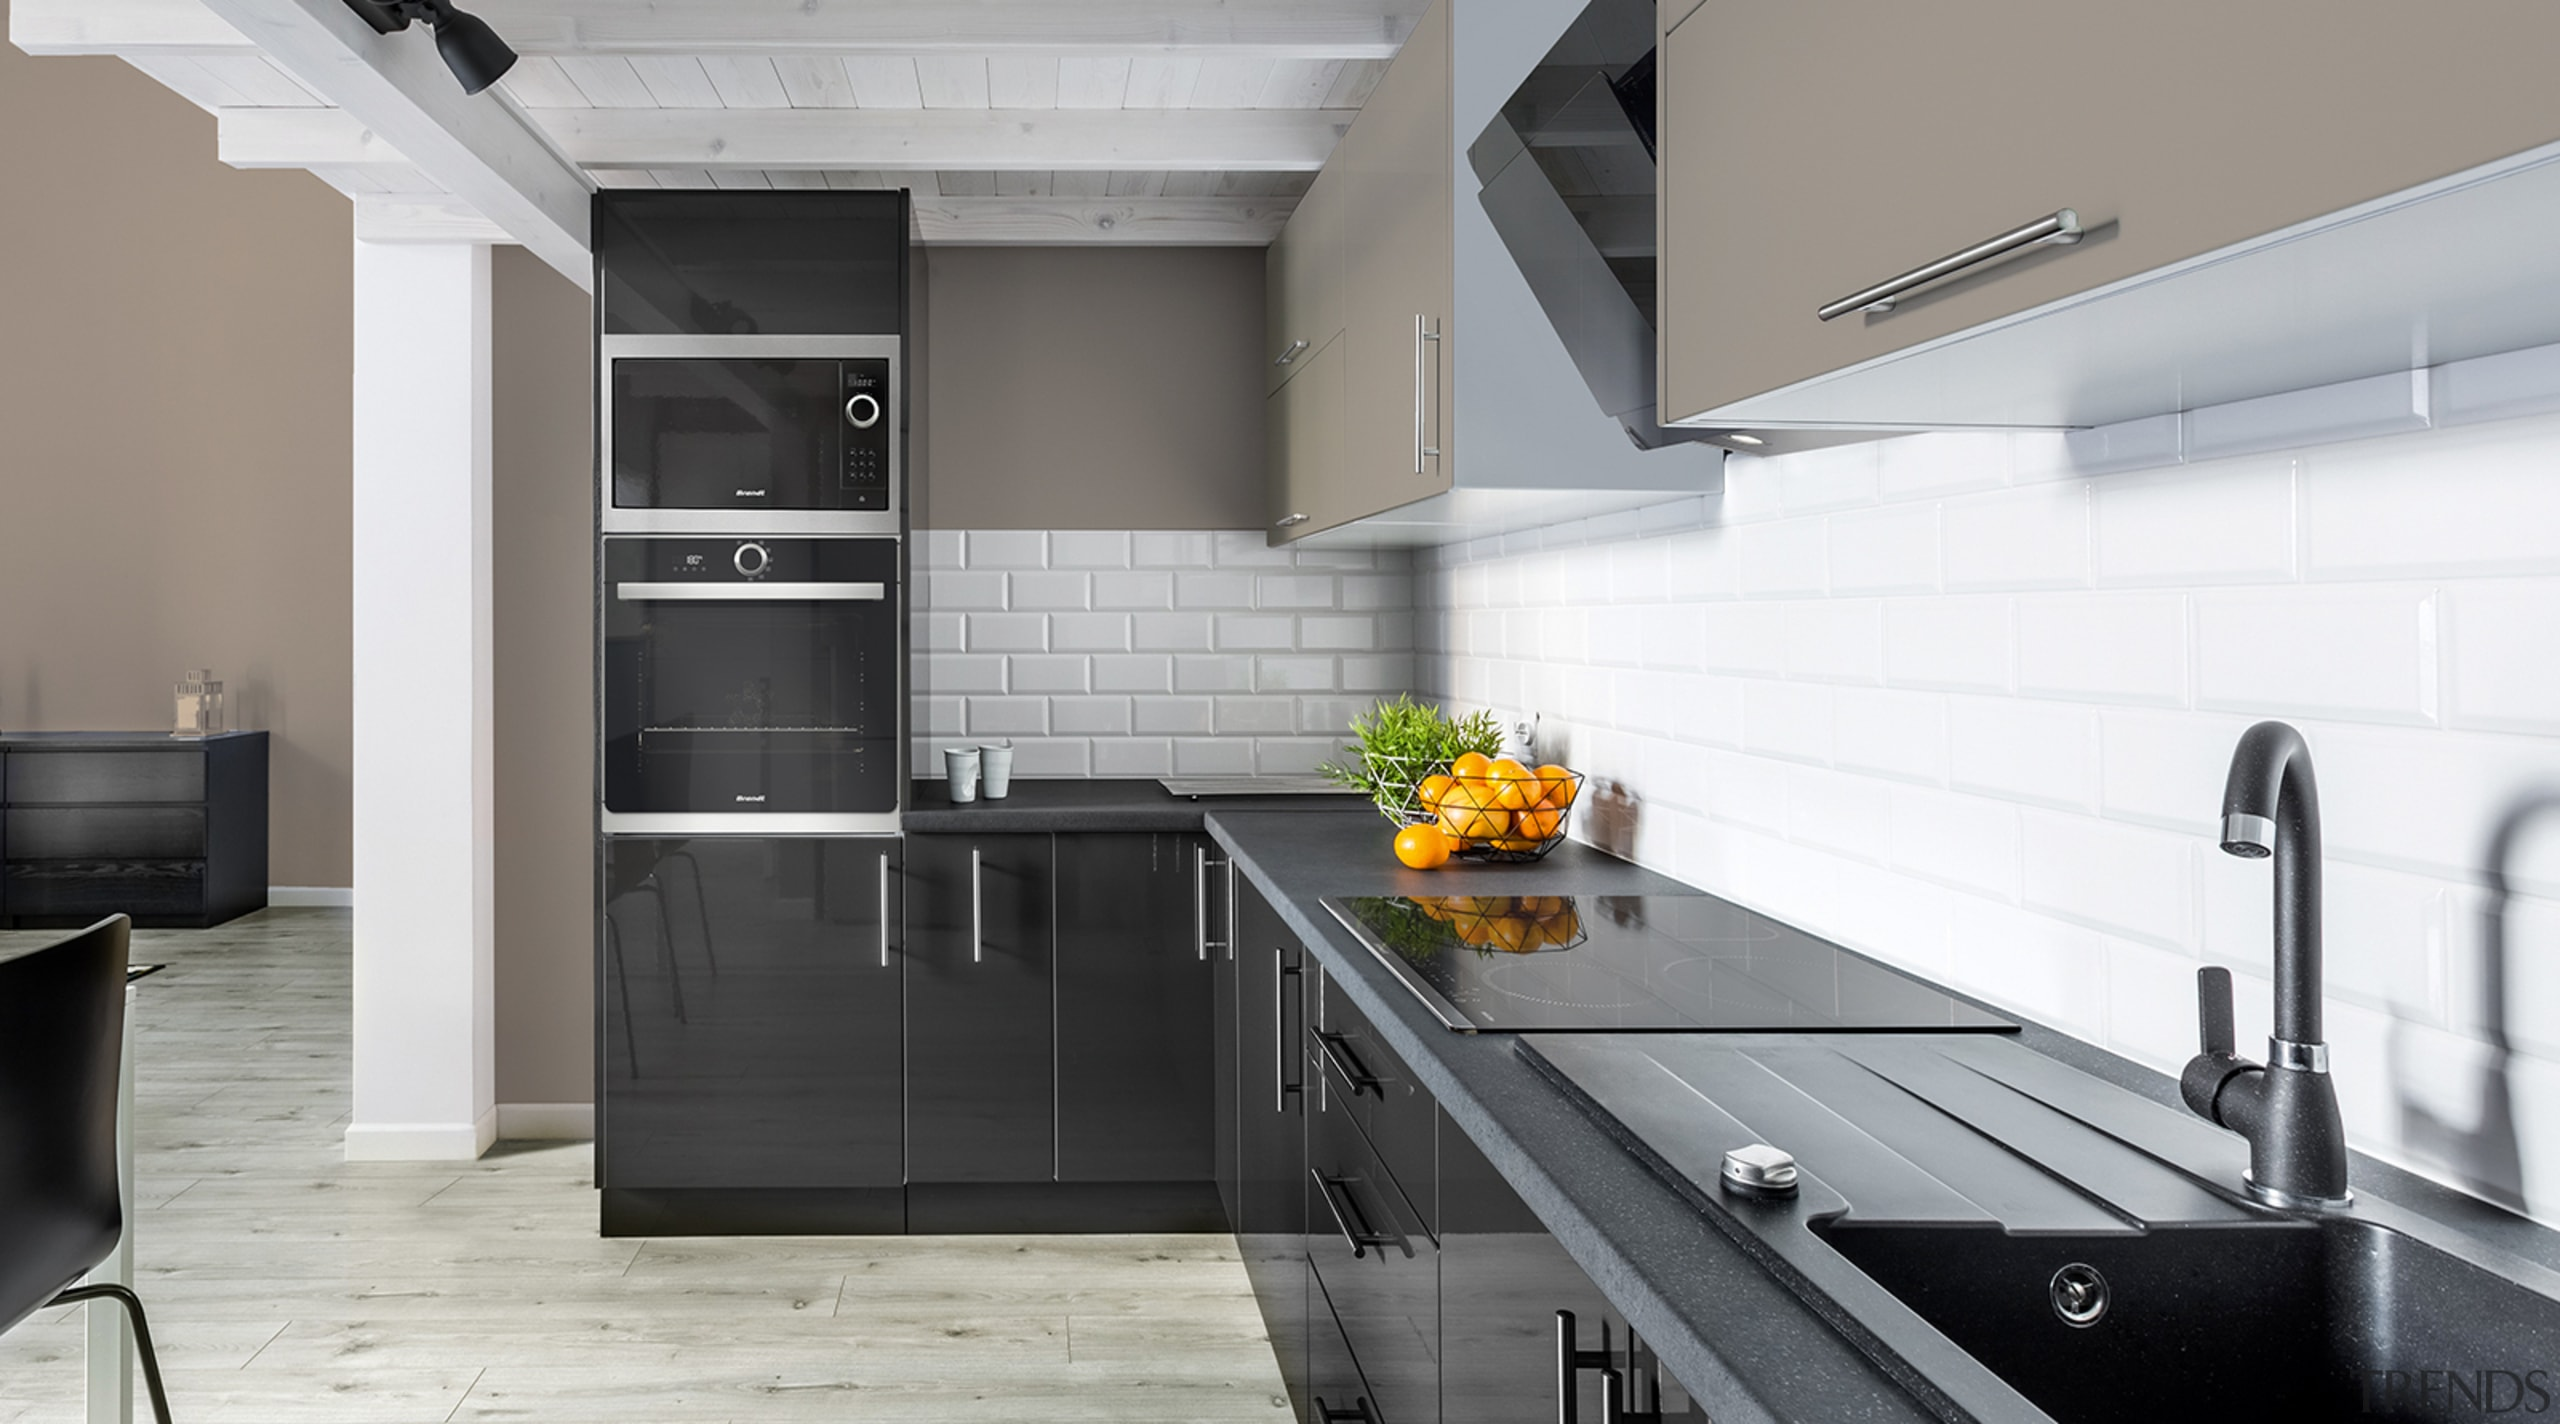 French appliance style, quality and value for money architecture, building, cabinetry, ceiling, countertop, floor, flooring, furniture, home, house, interior design, kitchen, kitchen stove, material property, property, real estate, room, tile, gray, white